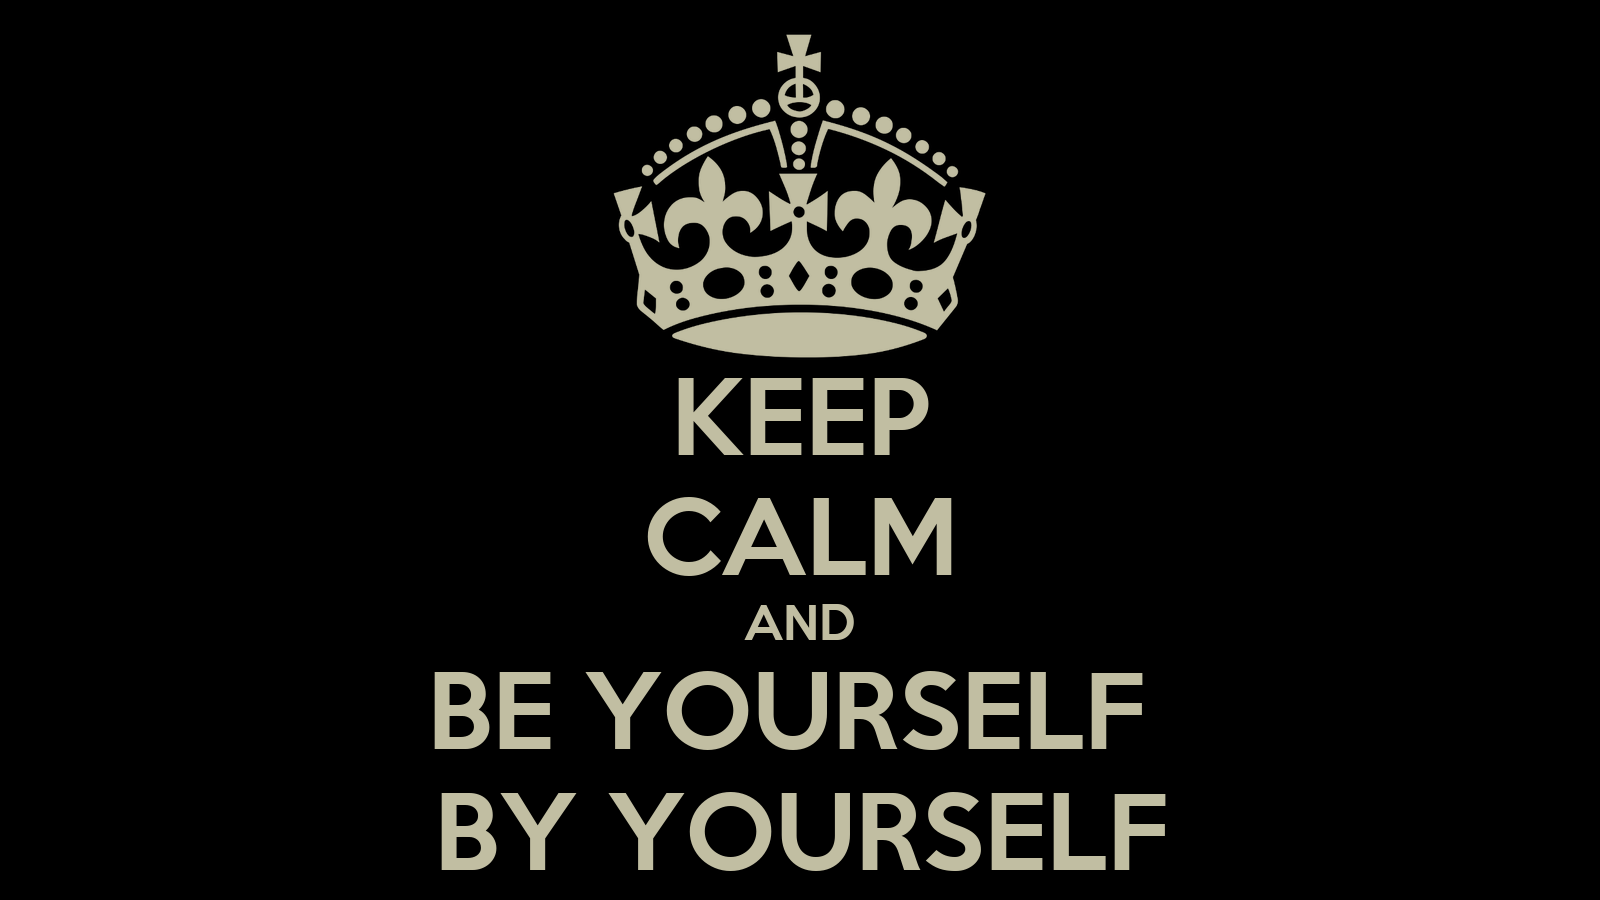 KEEP CALM AND BE YOURSELF BY Keep Calm And Be Yourself